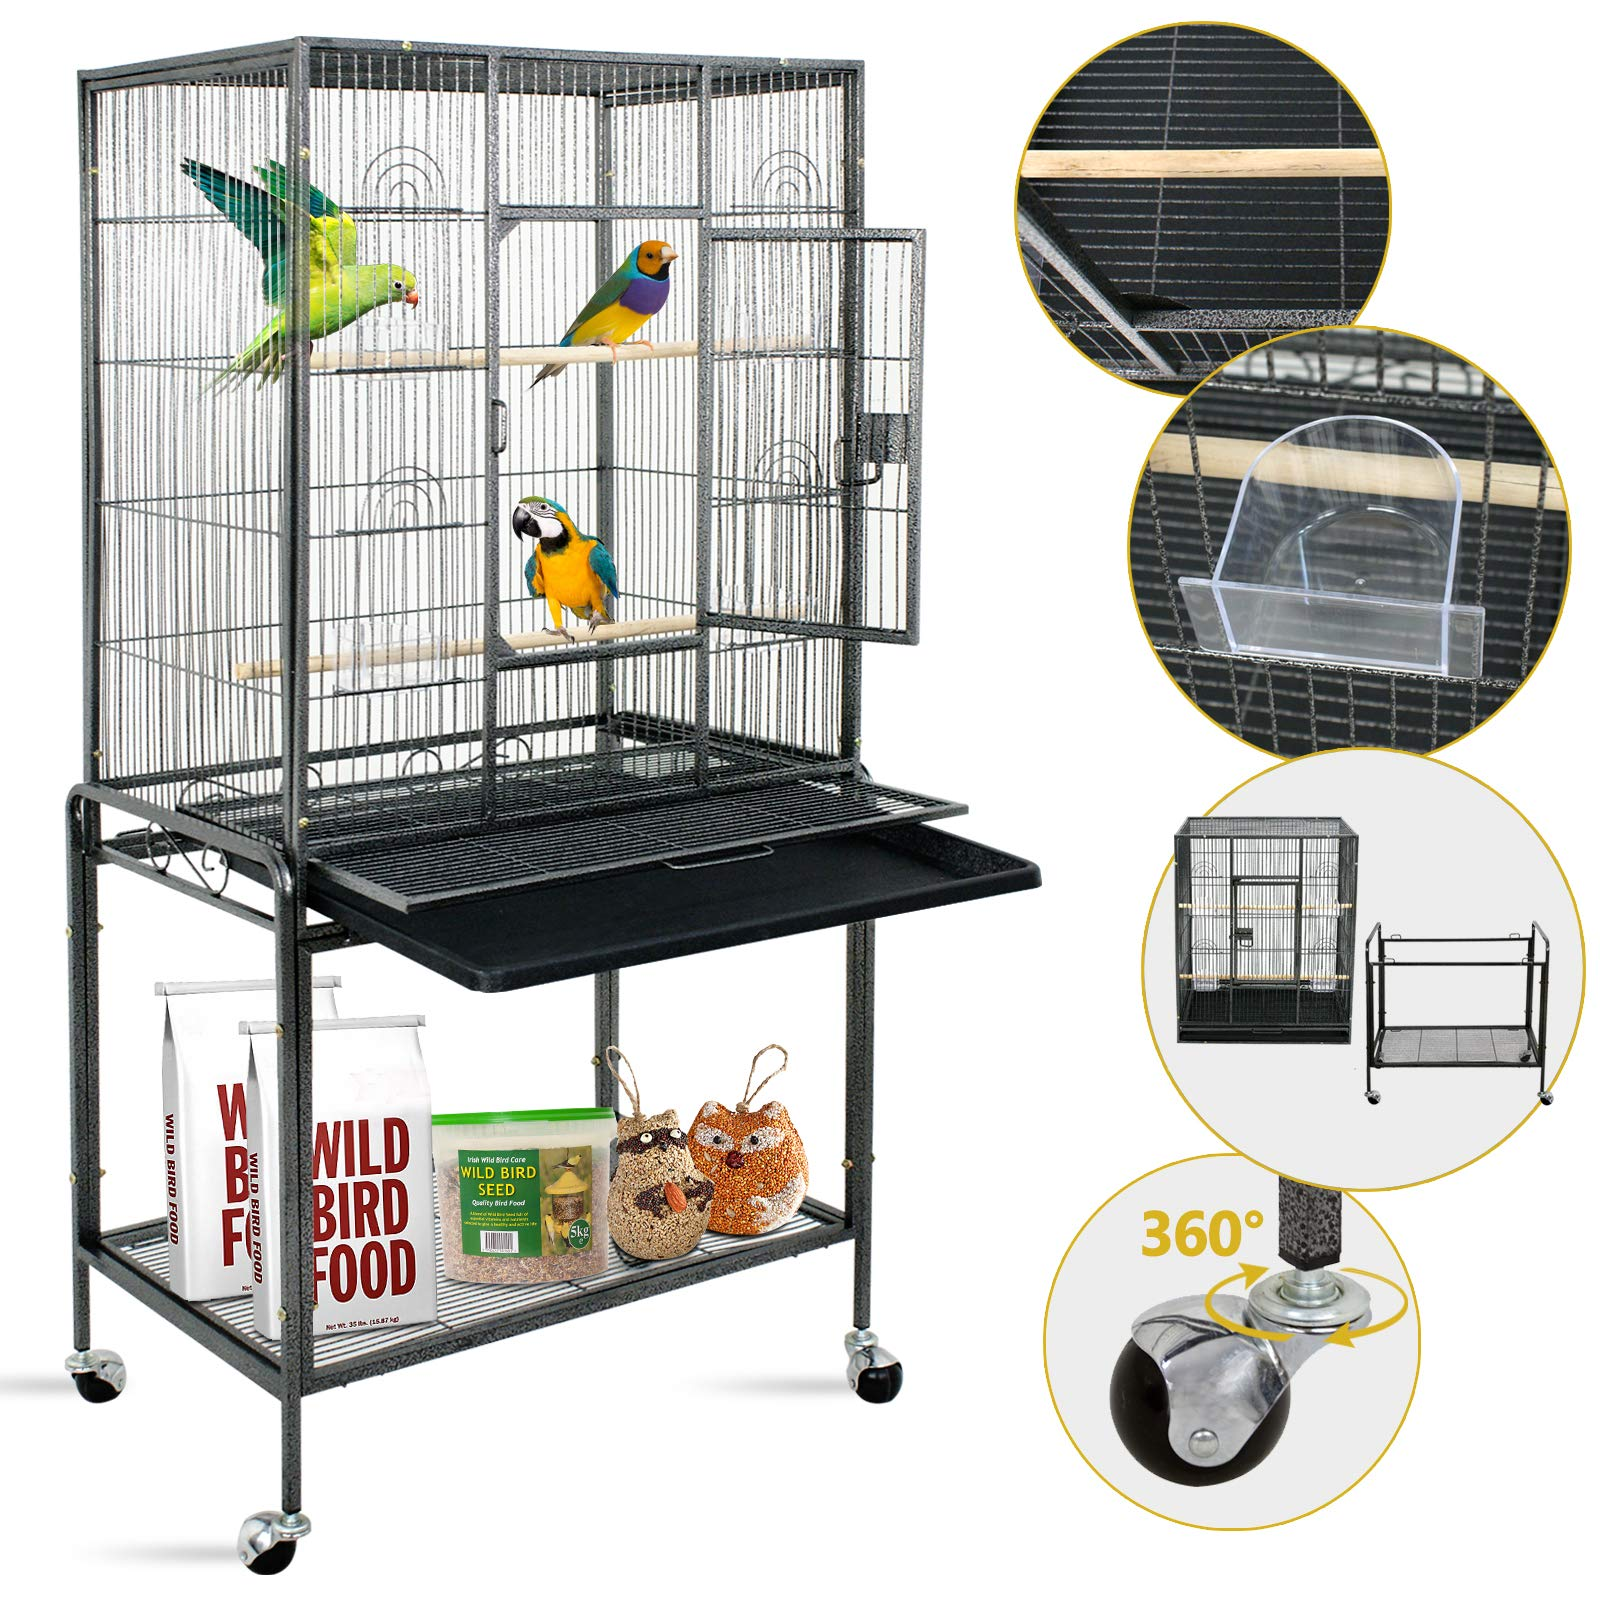 SUPER DEAL 53''/59.3''/63.5'' Rolling Bird Cage Large Wrought Iron Cage for Cockatiel Sun Conure Parakeet Finch Budgie Lovebird Canary Medium Pet House with Rolling Stand & Storage Shelf by SUPER DEAL